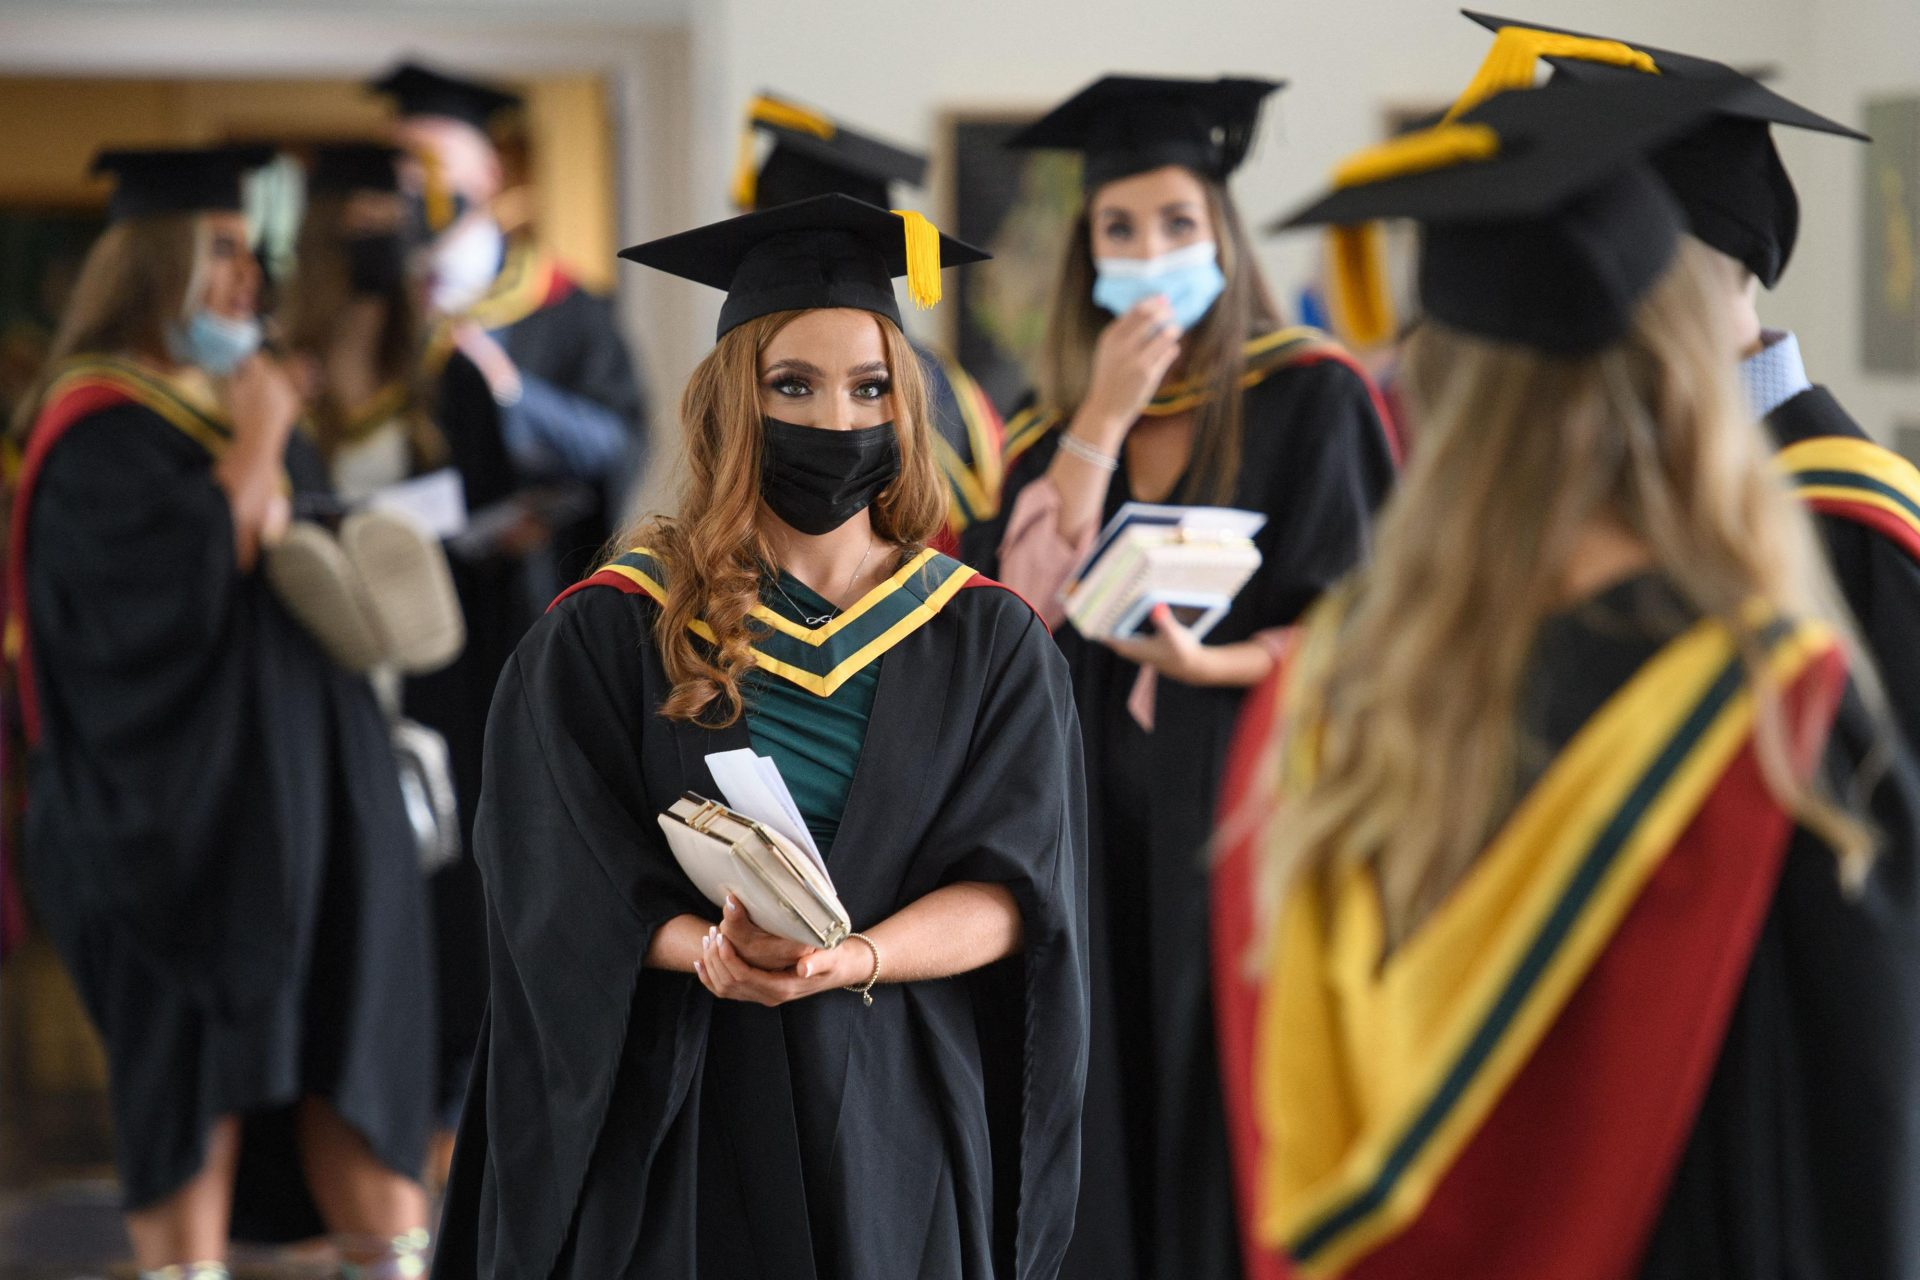 Students at their graduation ceremony. Photograph: Getty Images.